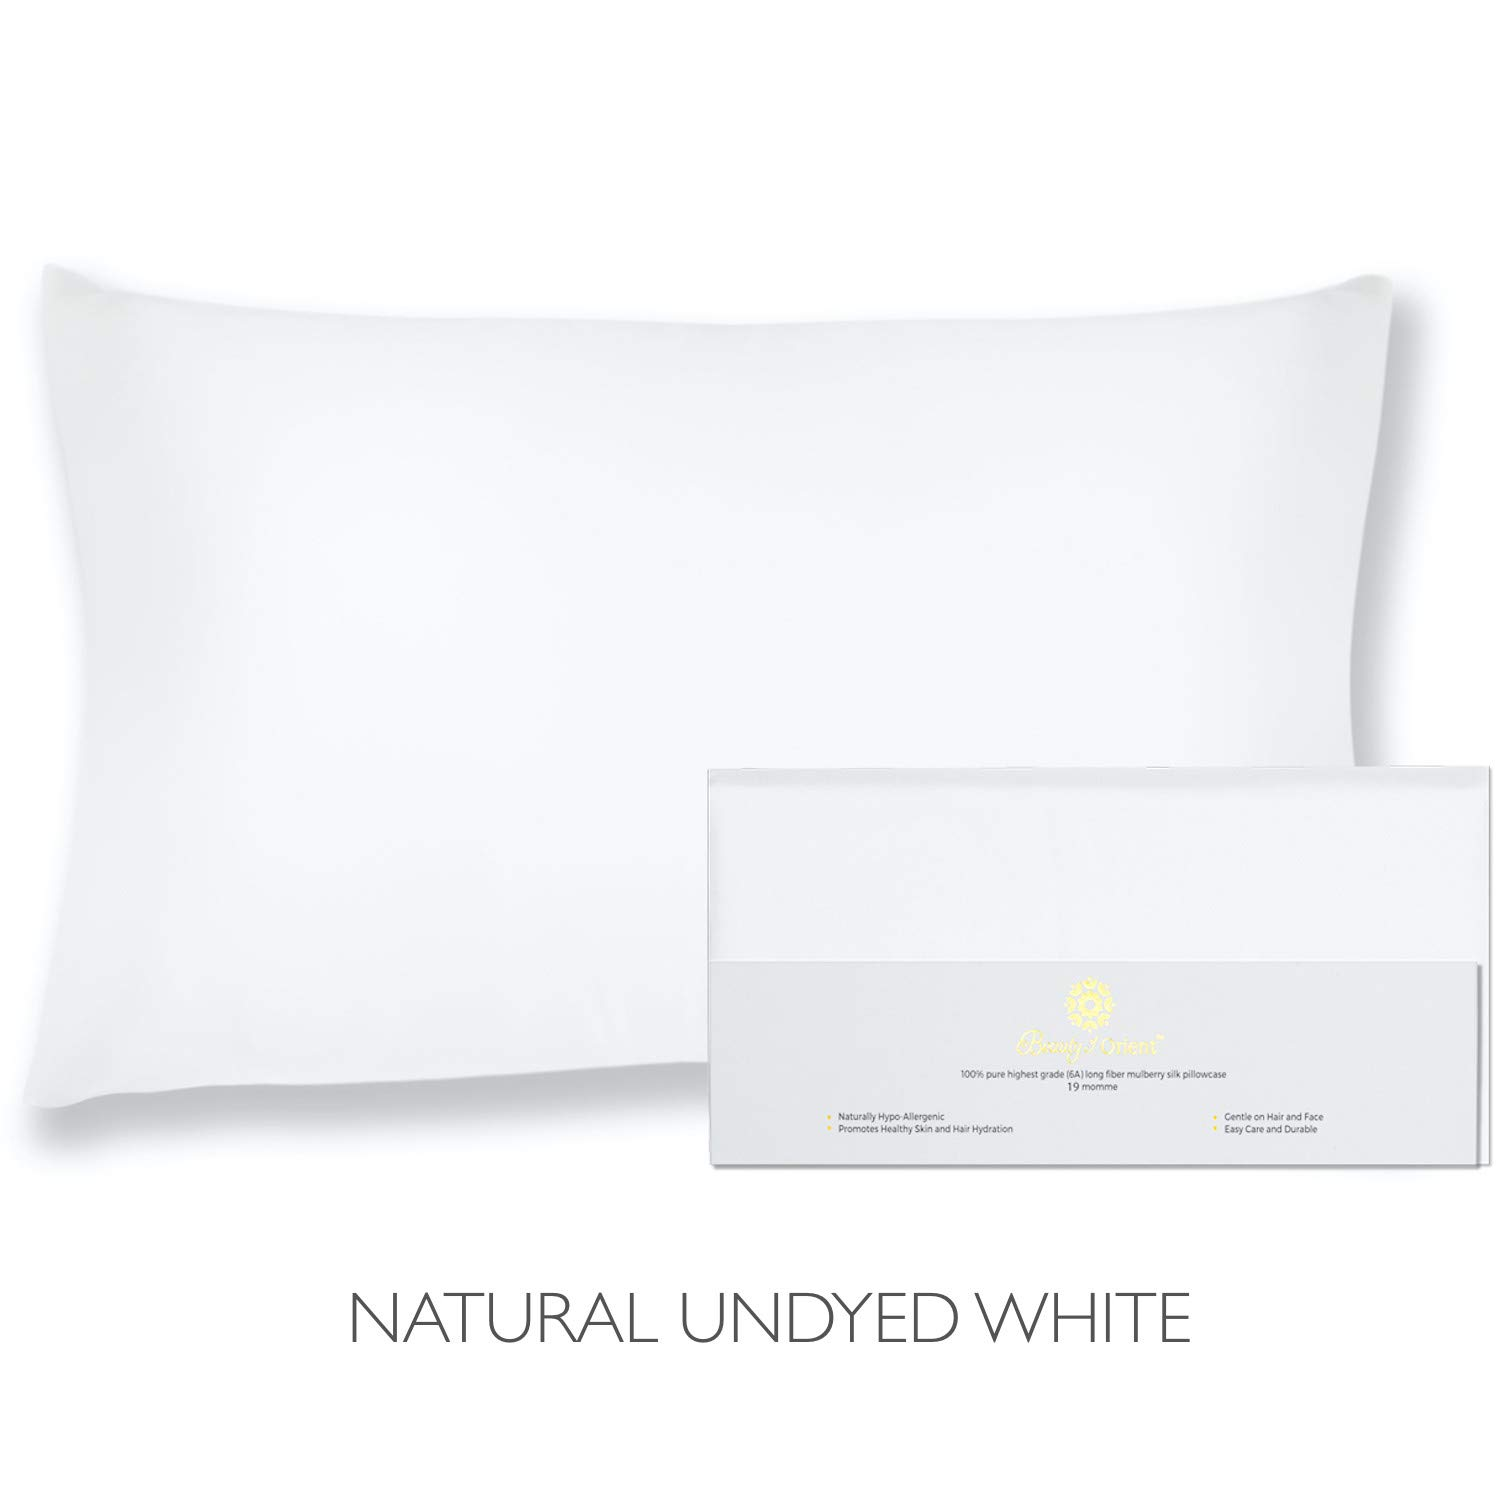 """Beauty of Orient - 100% Pure Mulberry Silk Pillowcase for Hair and Skin, 19 Momme Both Sides, Hidden Zipper, Natural Hypoallergenic Silk Pillow Case (1pc Queen - 20"""" x 30"""", Natural Undyed White)"""